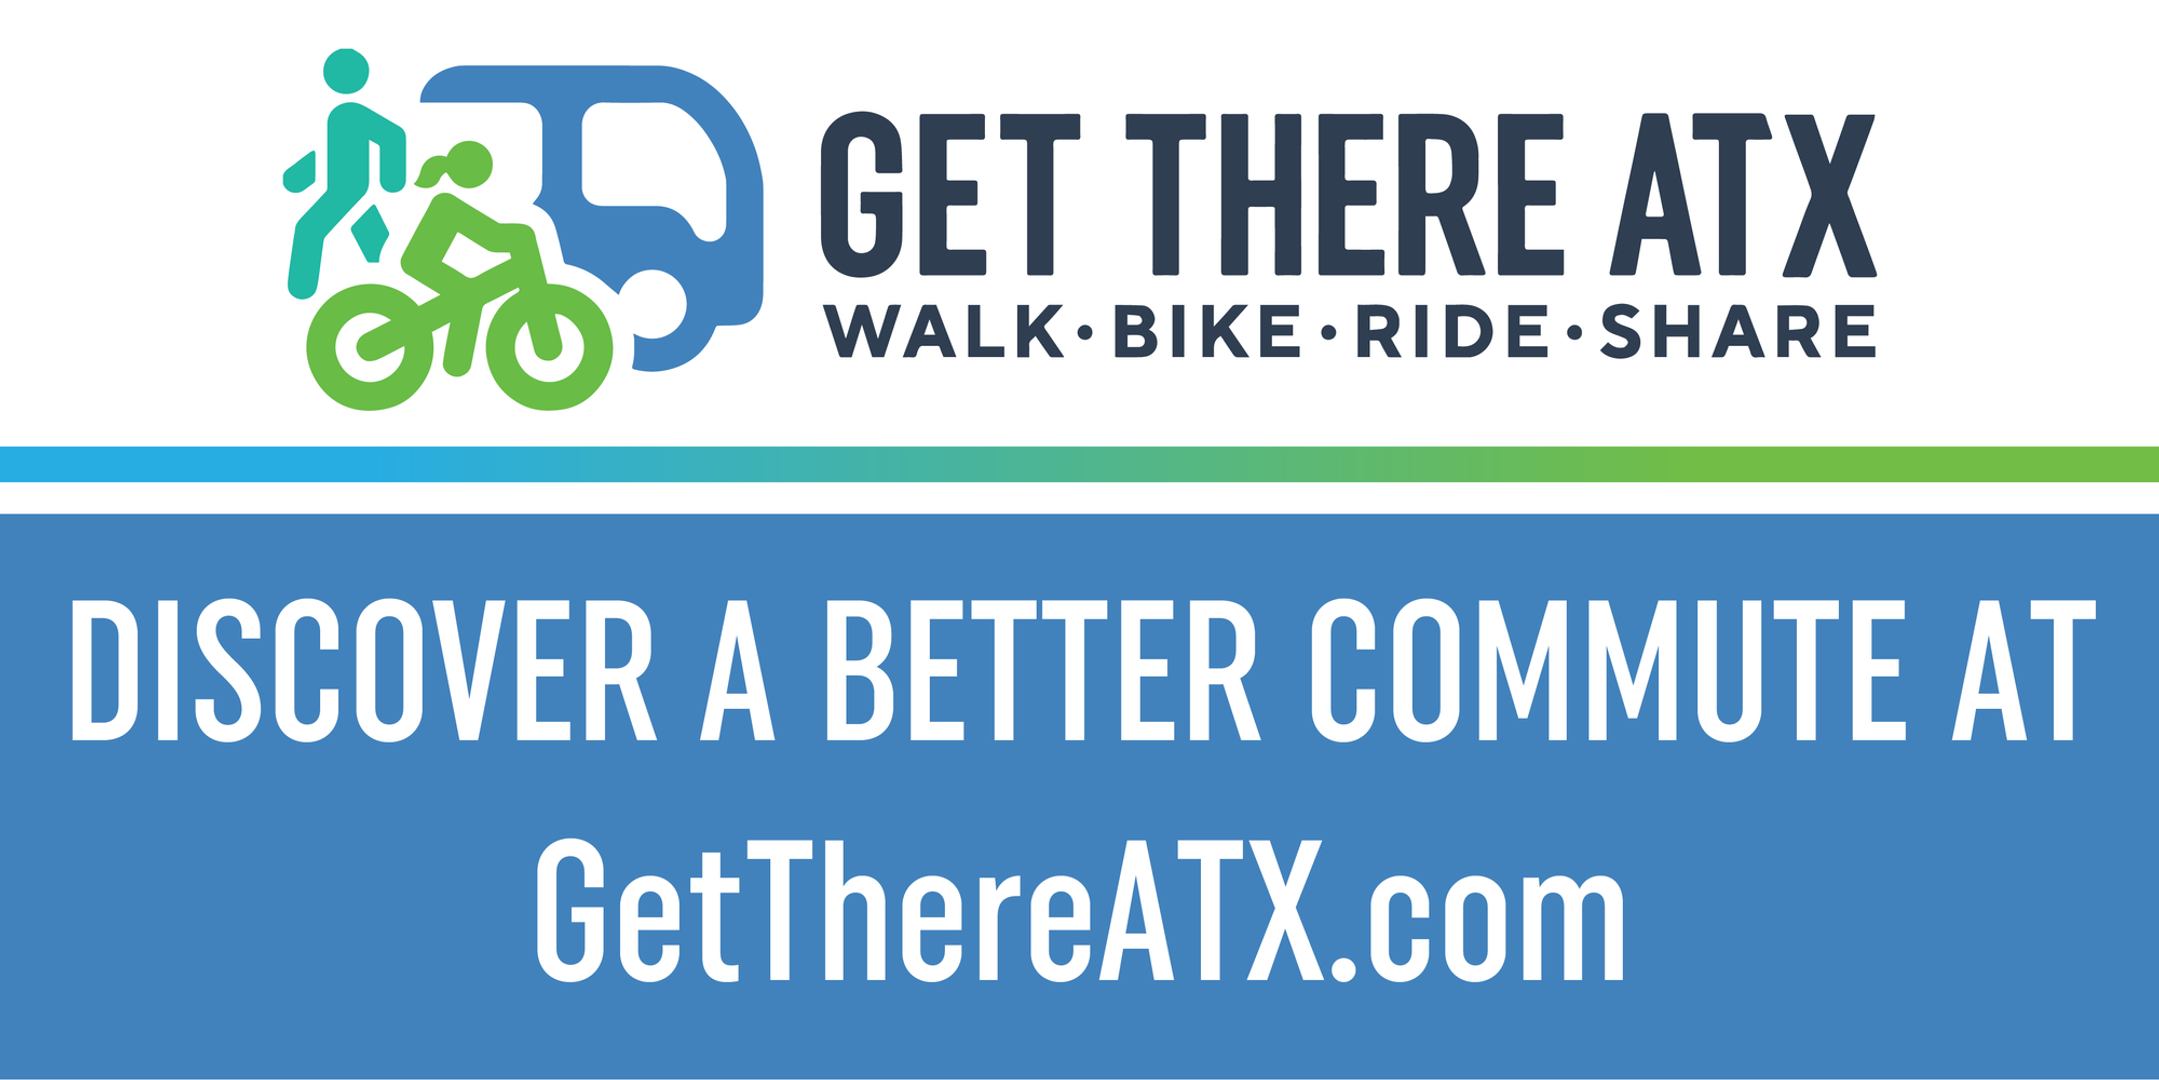 GetThereATX General Graphic